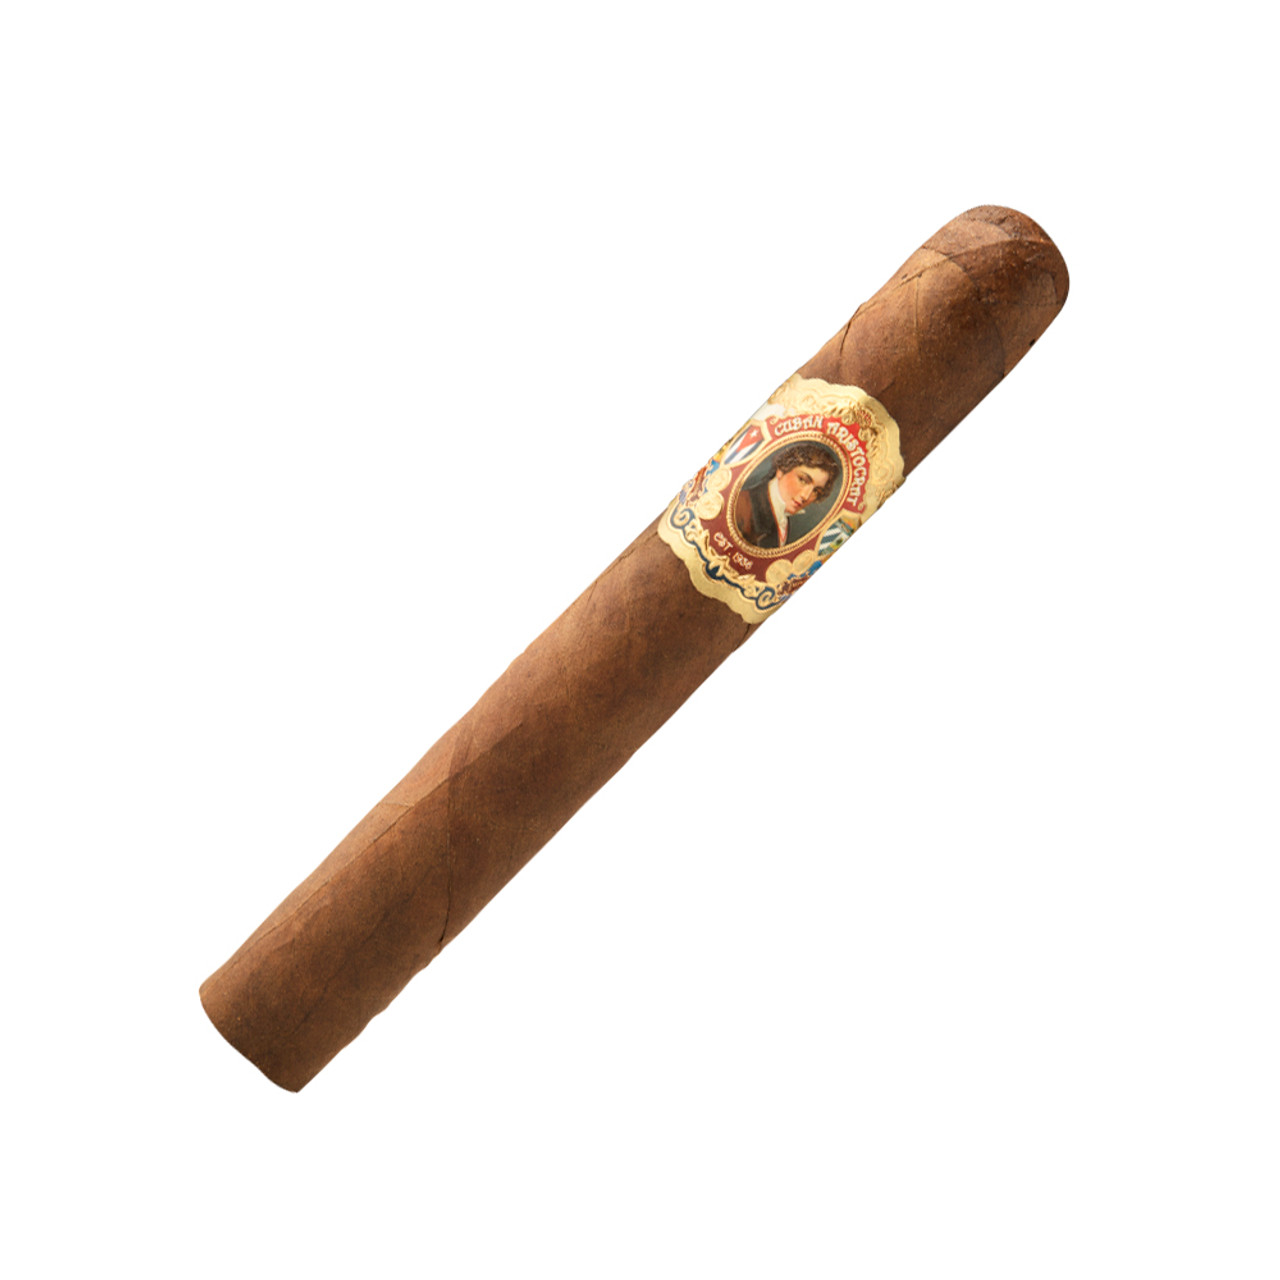 Cuban Aristocrat Double Toro Maduro Cigars - 6.25 x 54 (Box of 20)